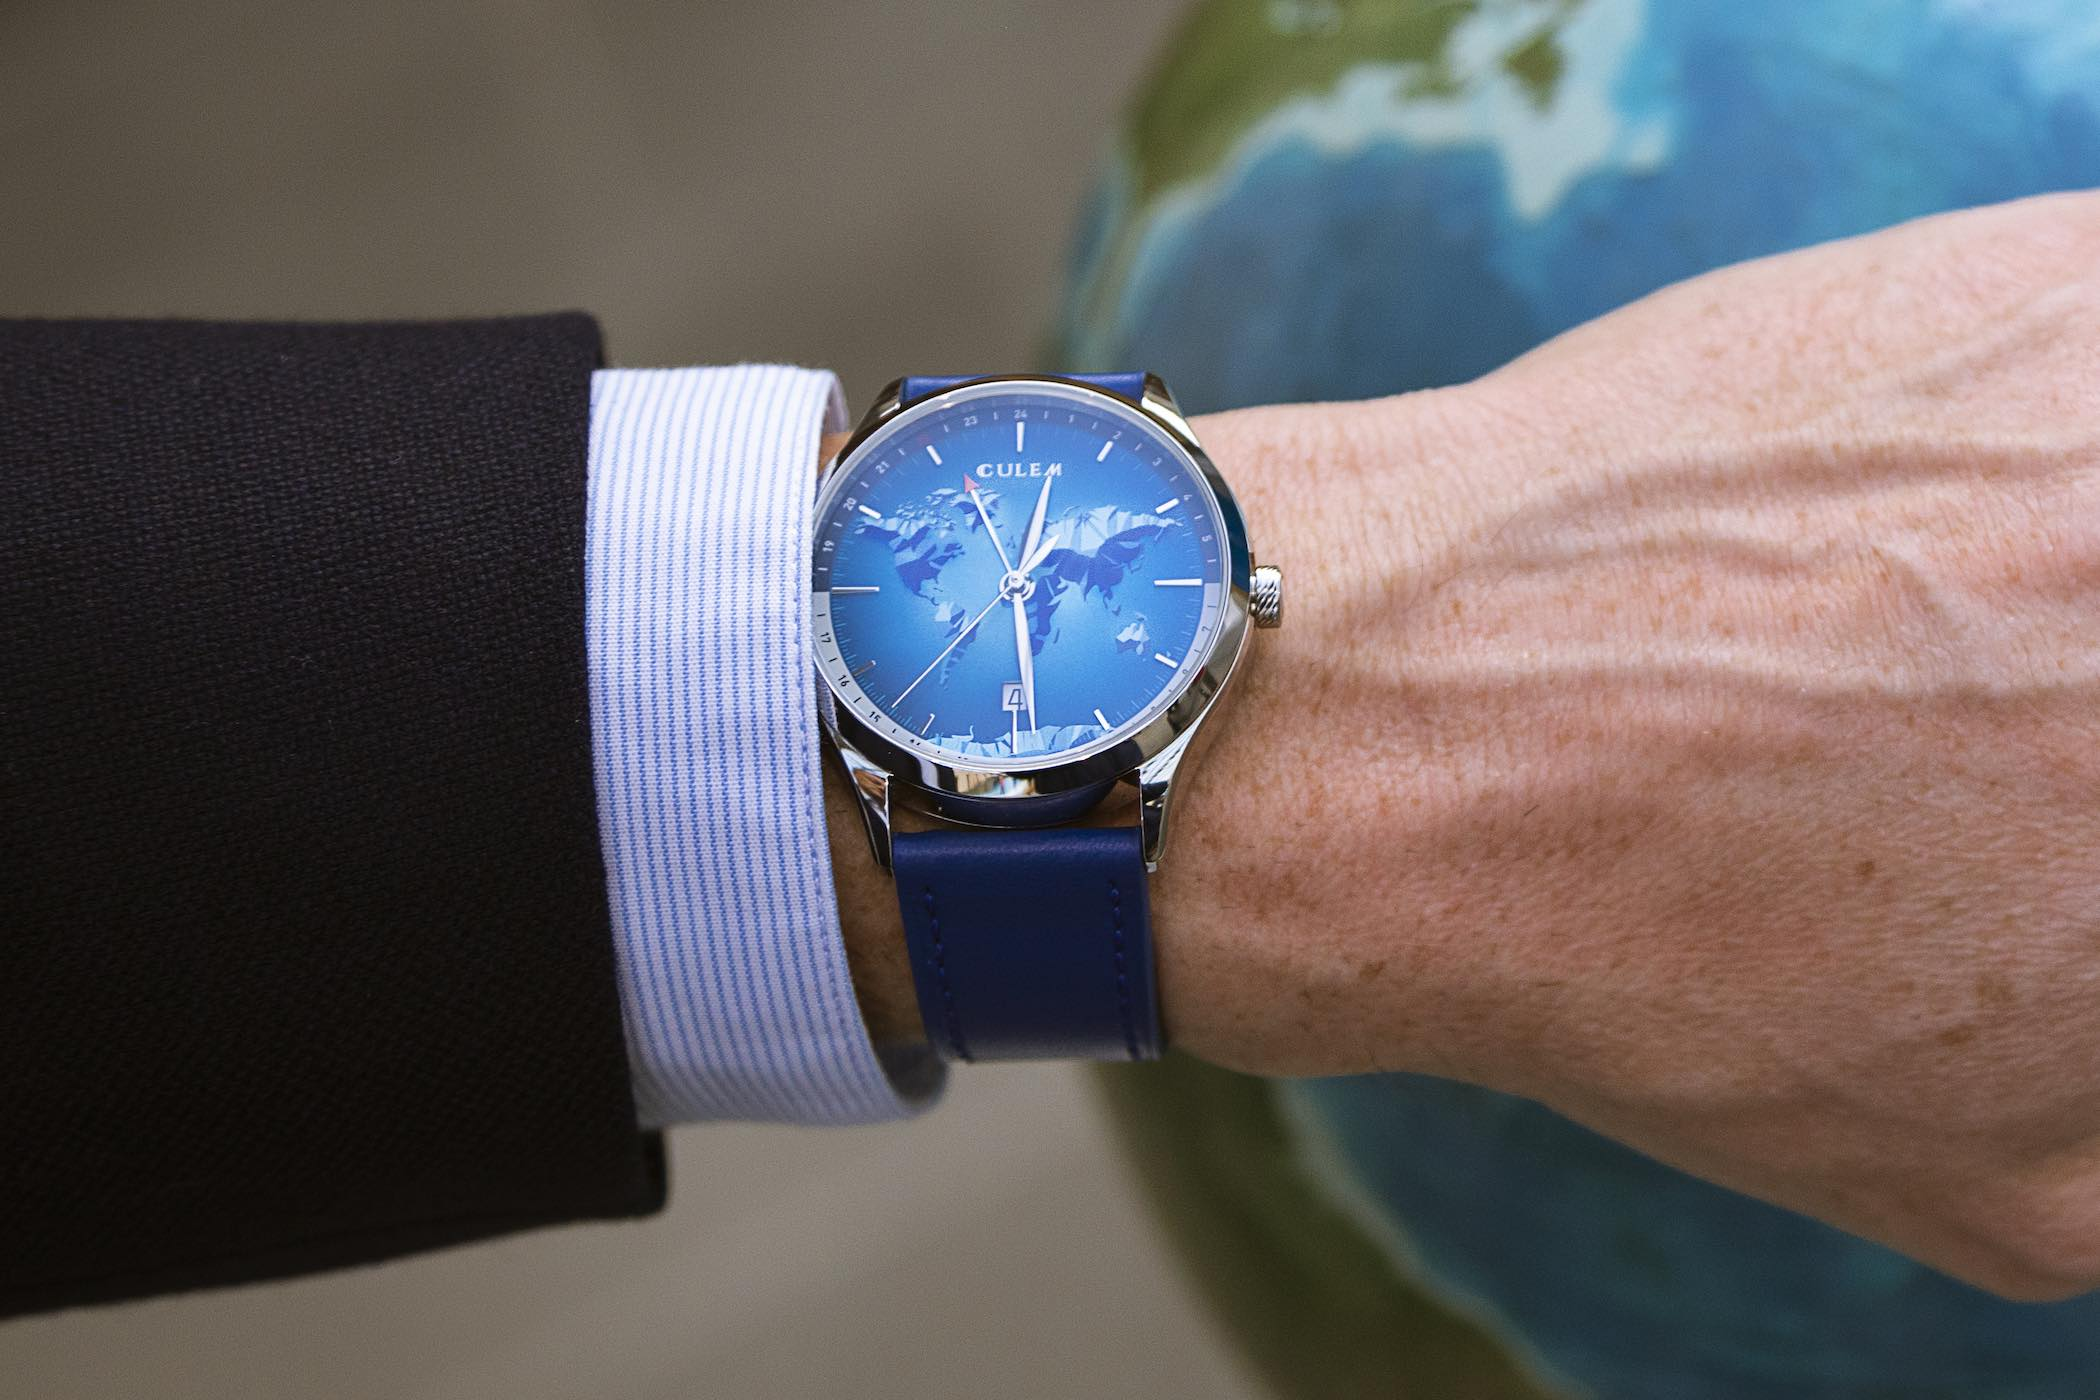 CuleM World GMT Accessible Travelers Watch Kickstarter